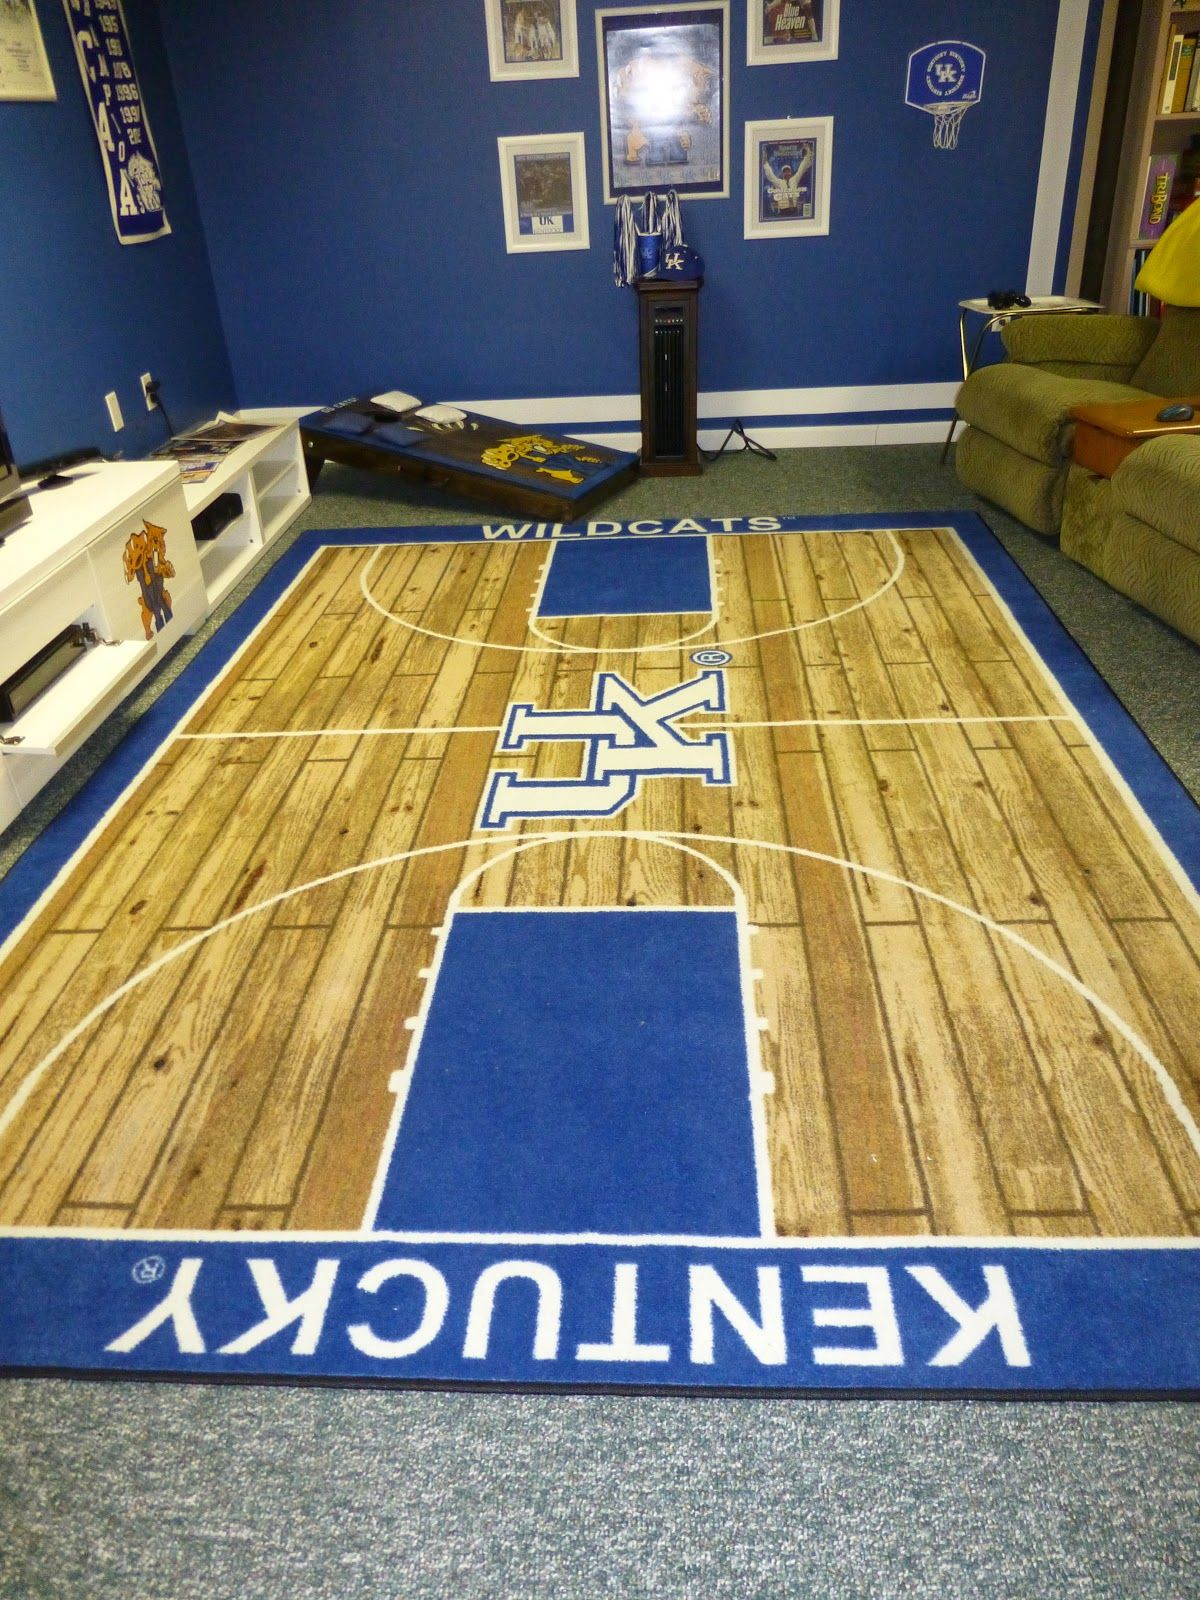 Awesome The Lazy Girlu0027s Blog #University Of Kentucky #Man Caves